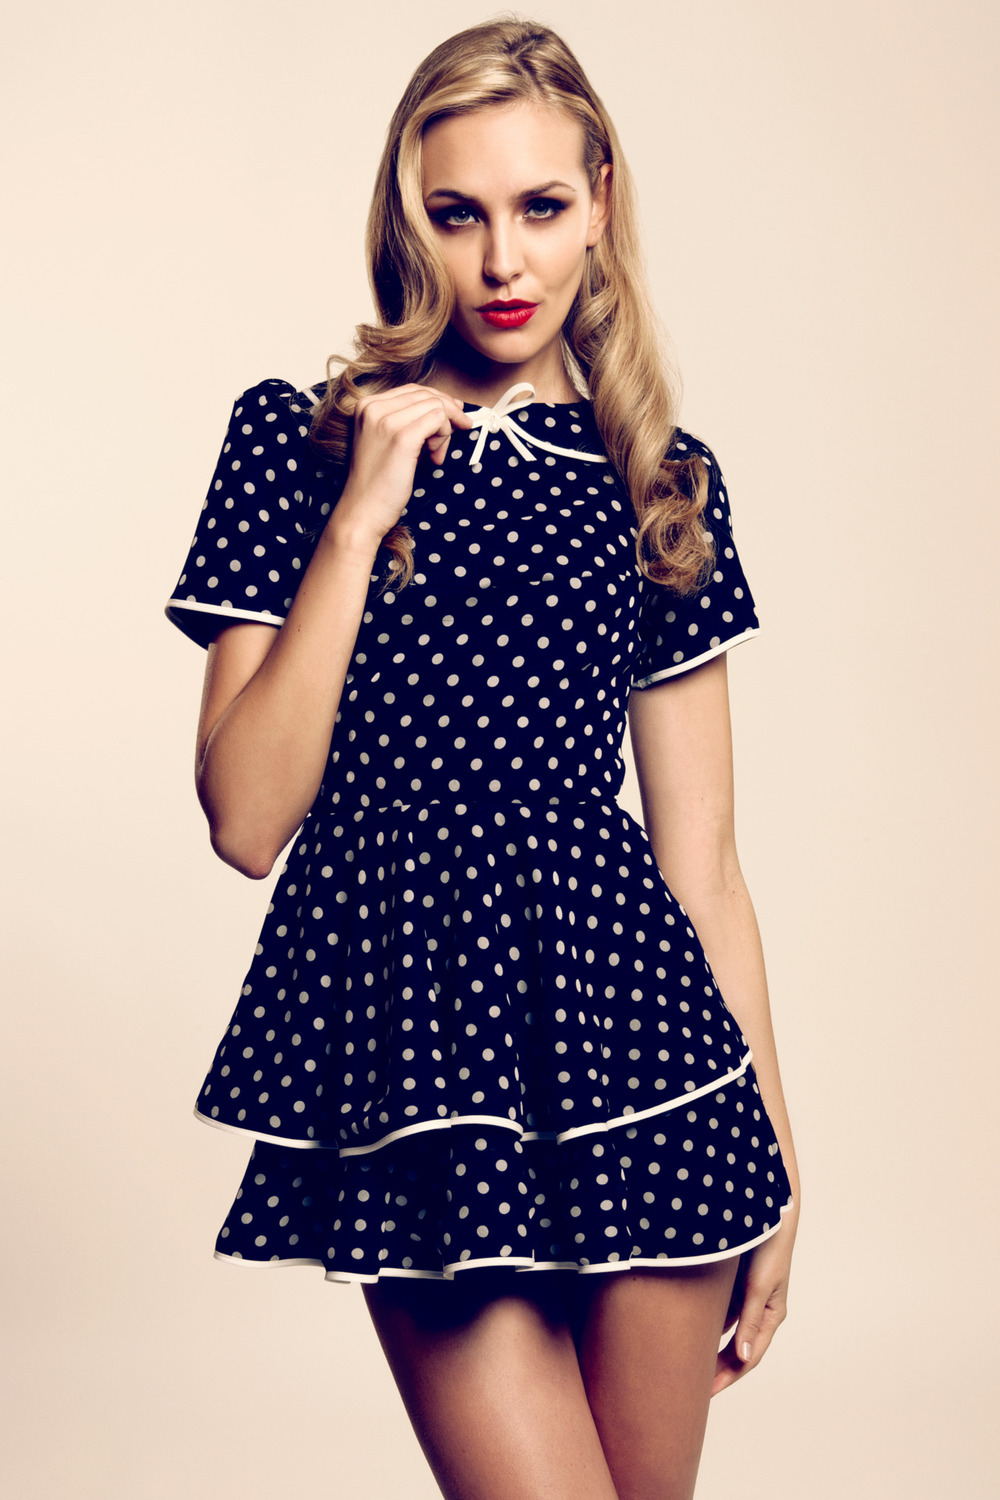 Summer 2012 New Collection Polka dot Layered Mini Dress~ So sexy! ©Tawfickphotography